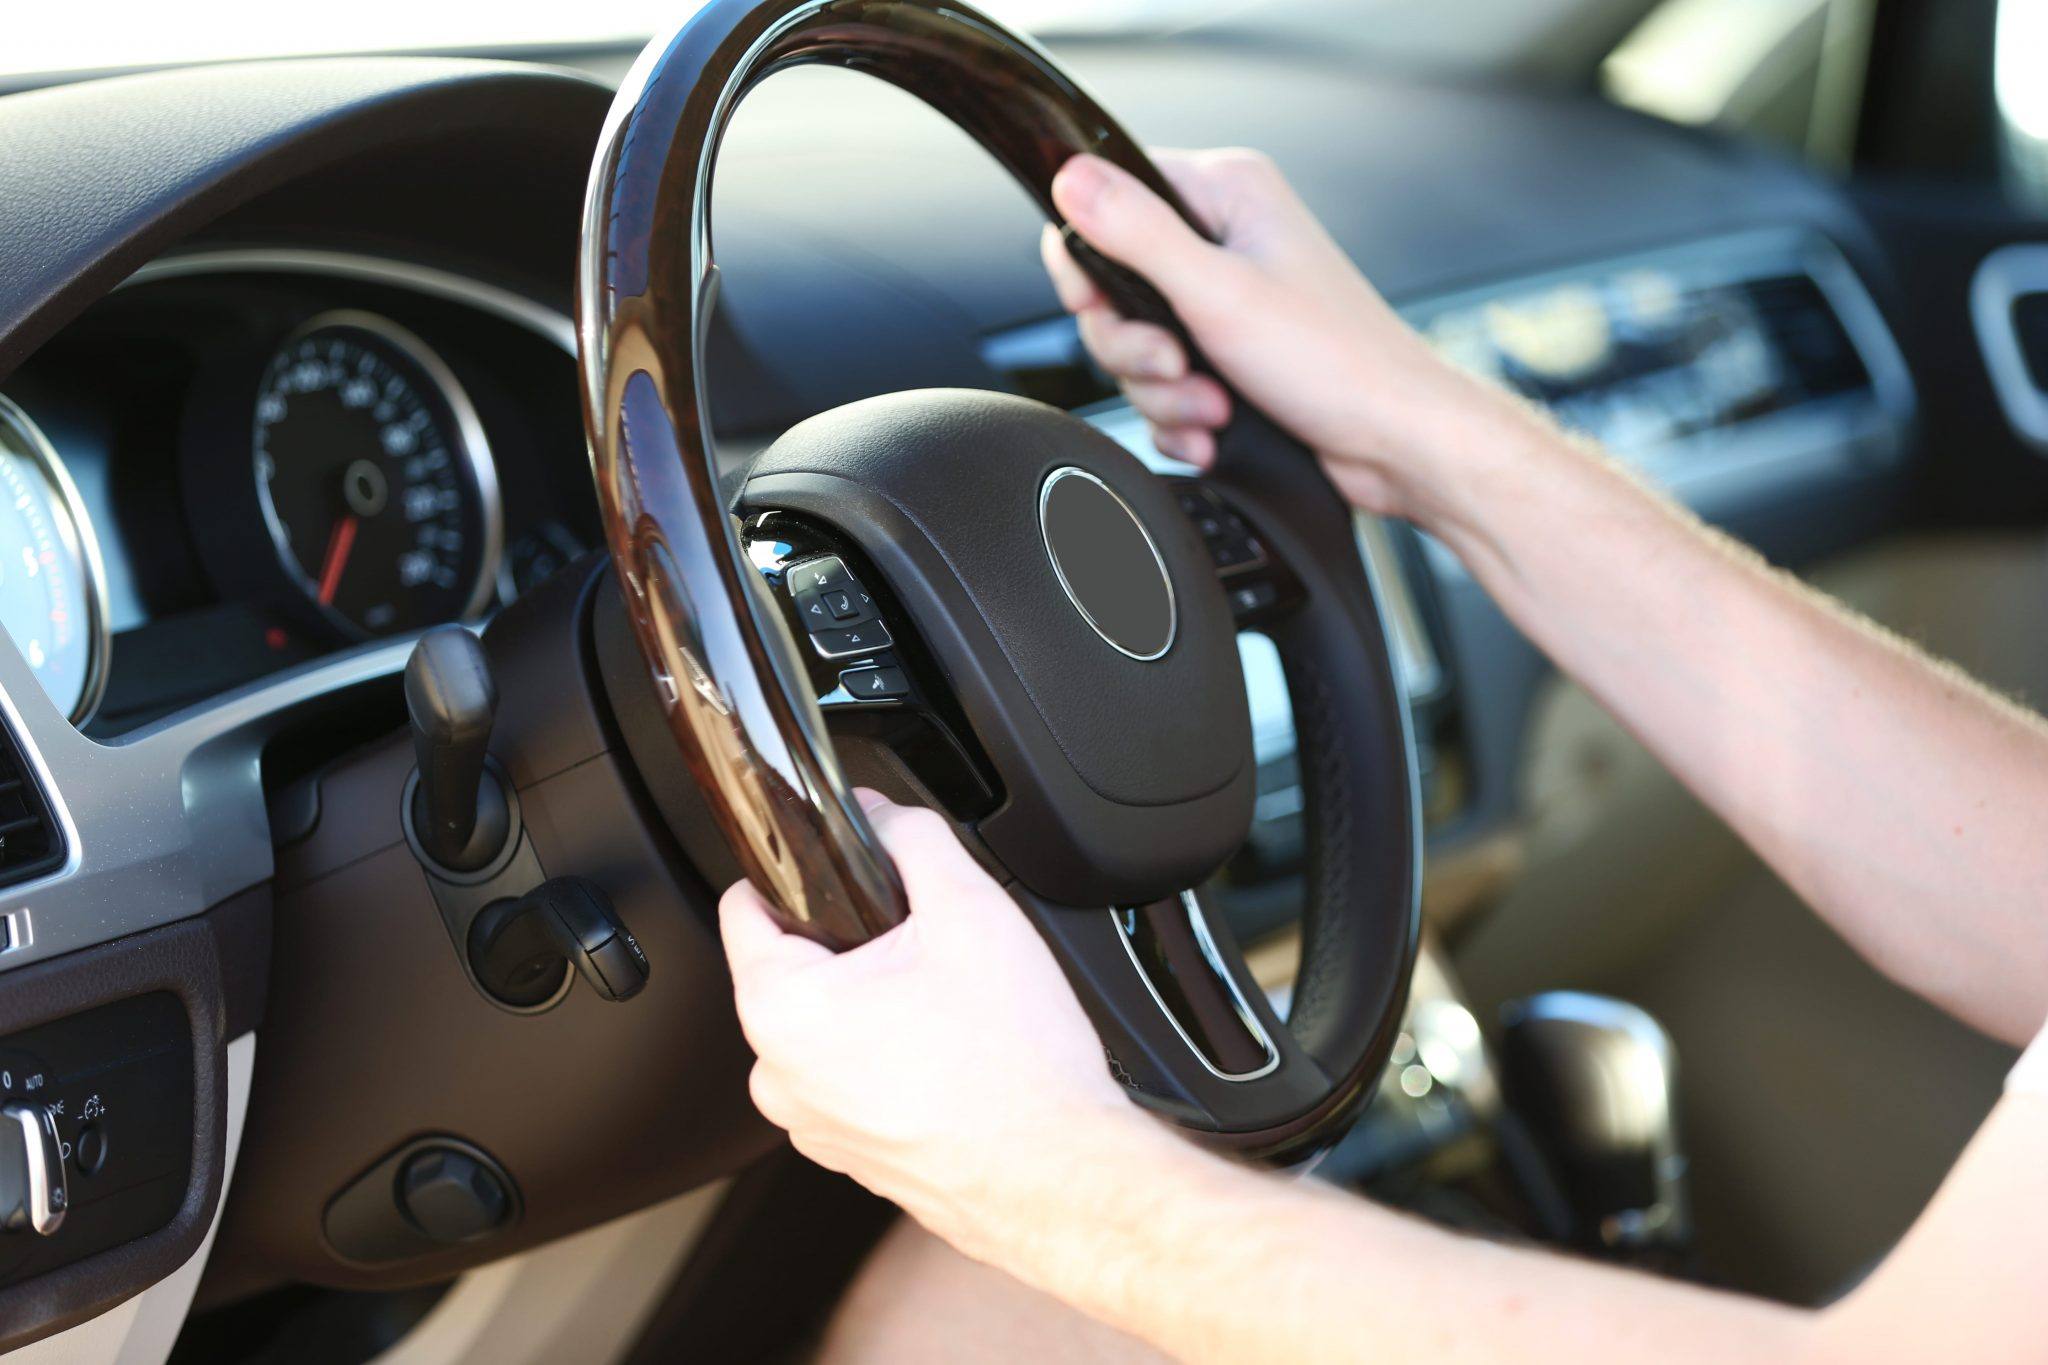 is it safe to drive without power steering